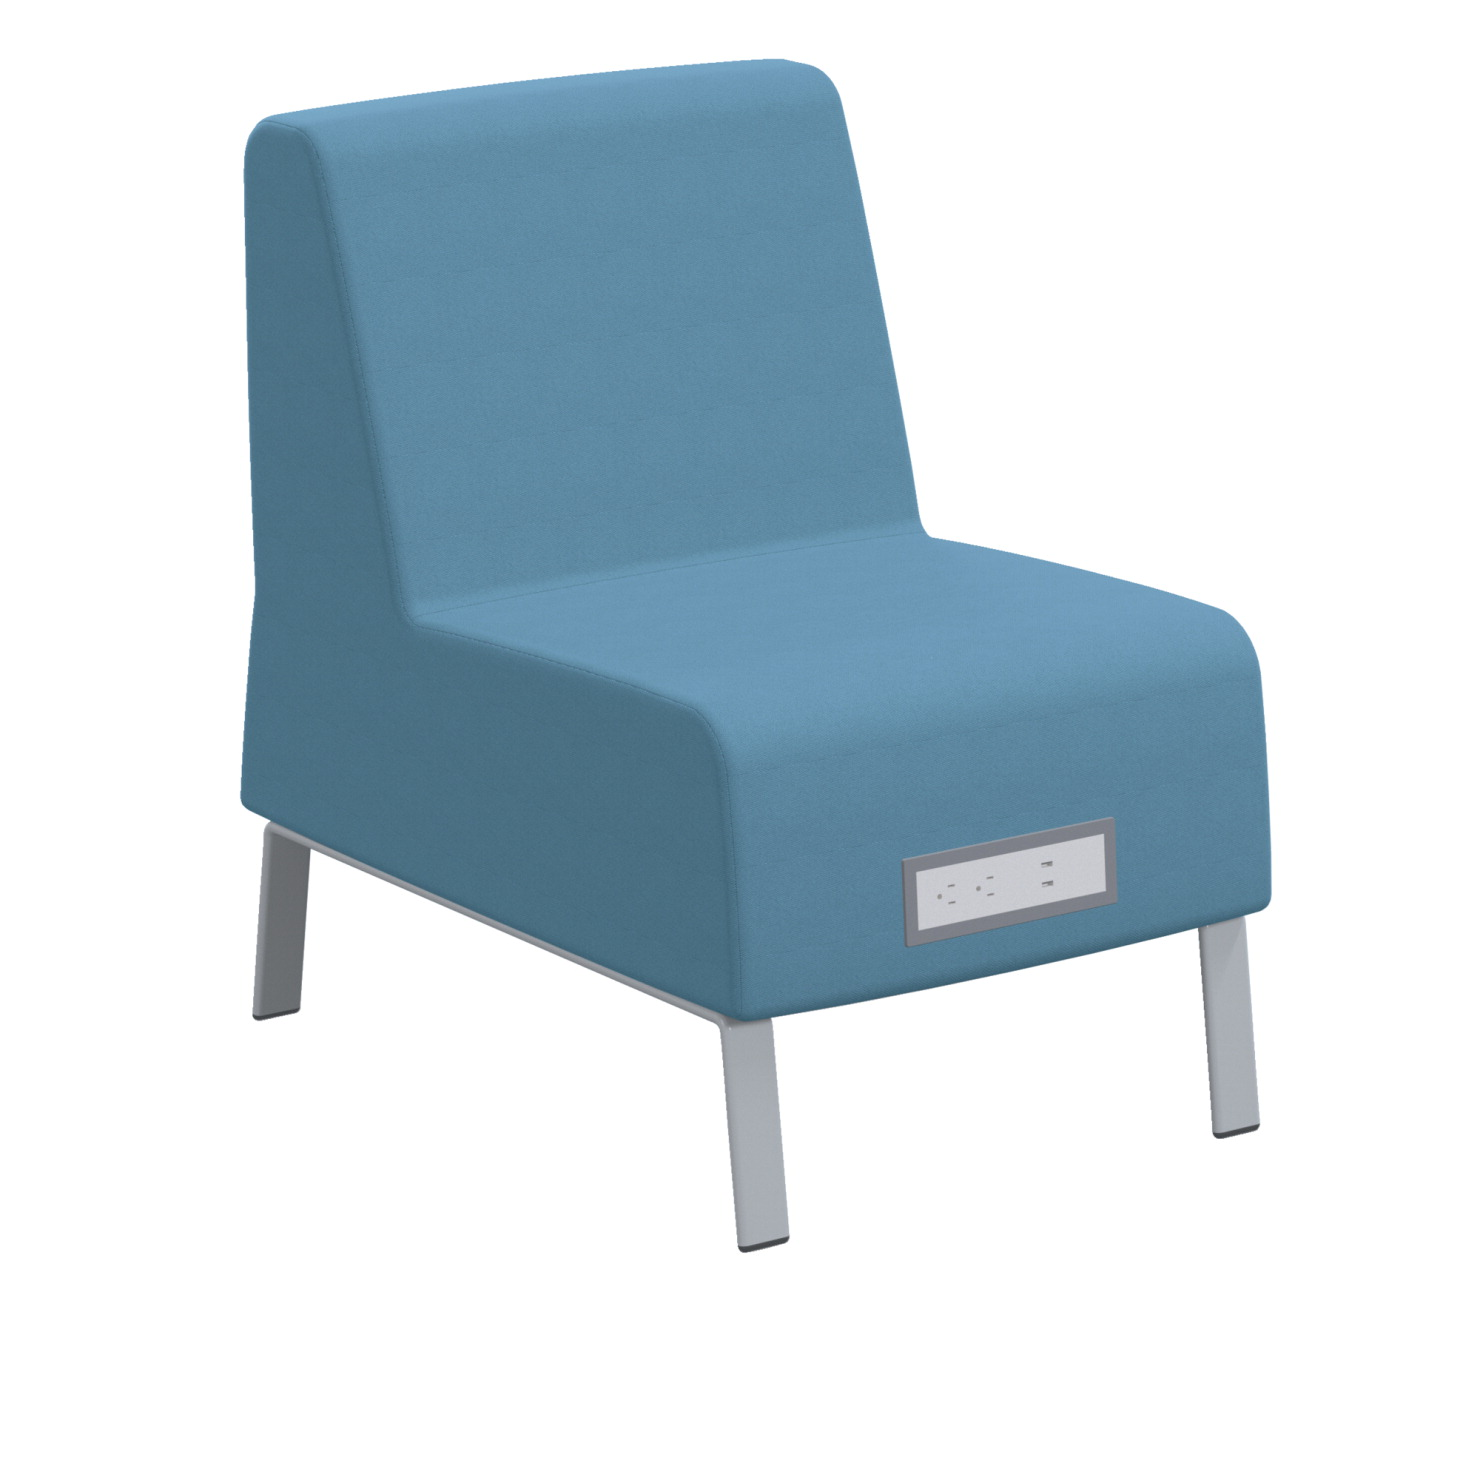 Classroom Select Soft Seating Armless Chair, Power Flat in Front, 23 x 32 x 34 Inches, Various Options